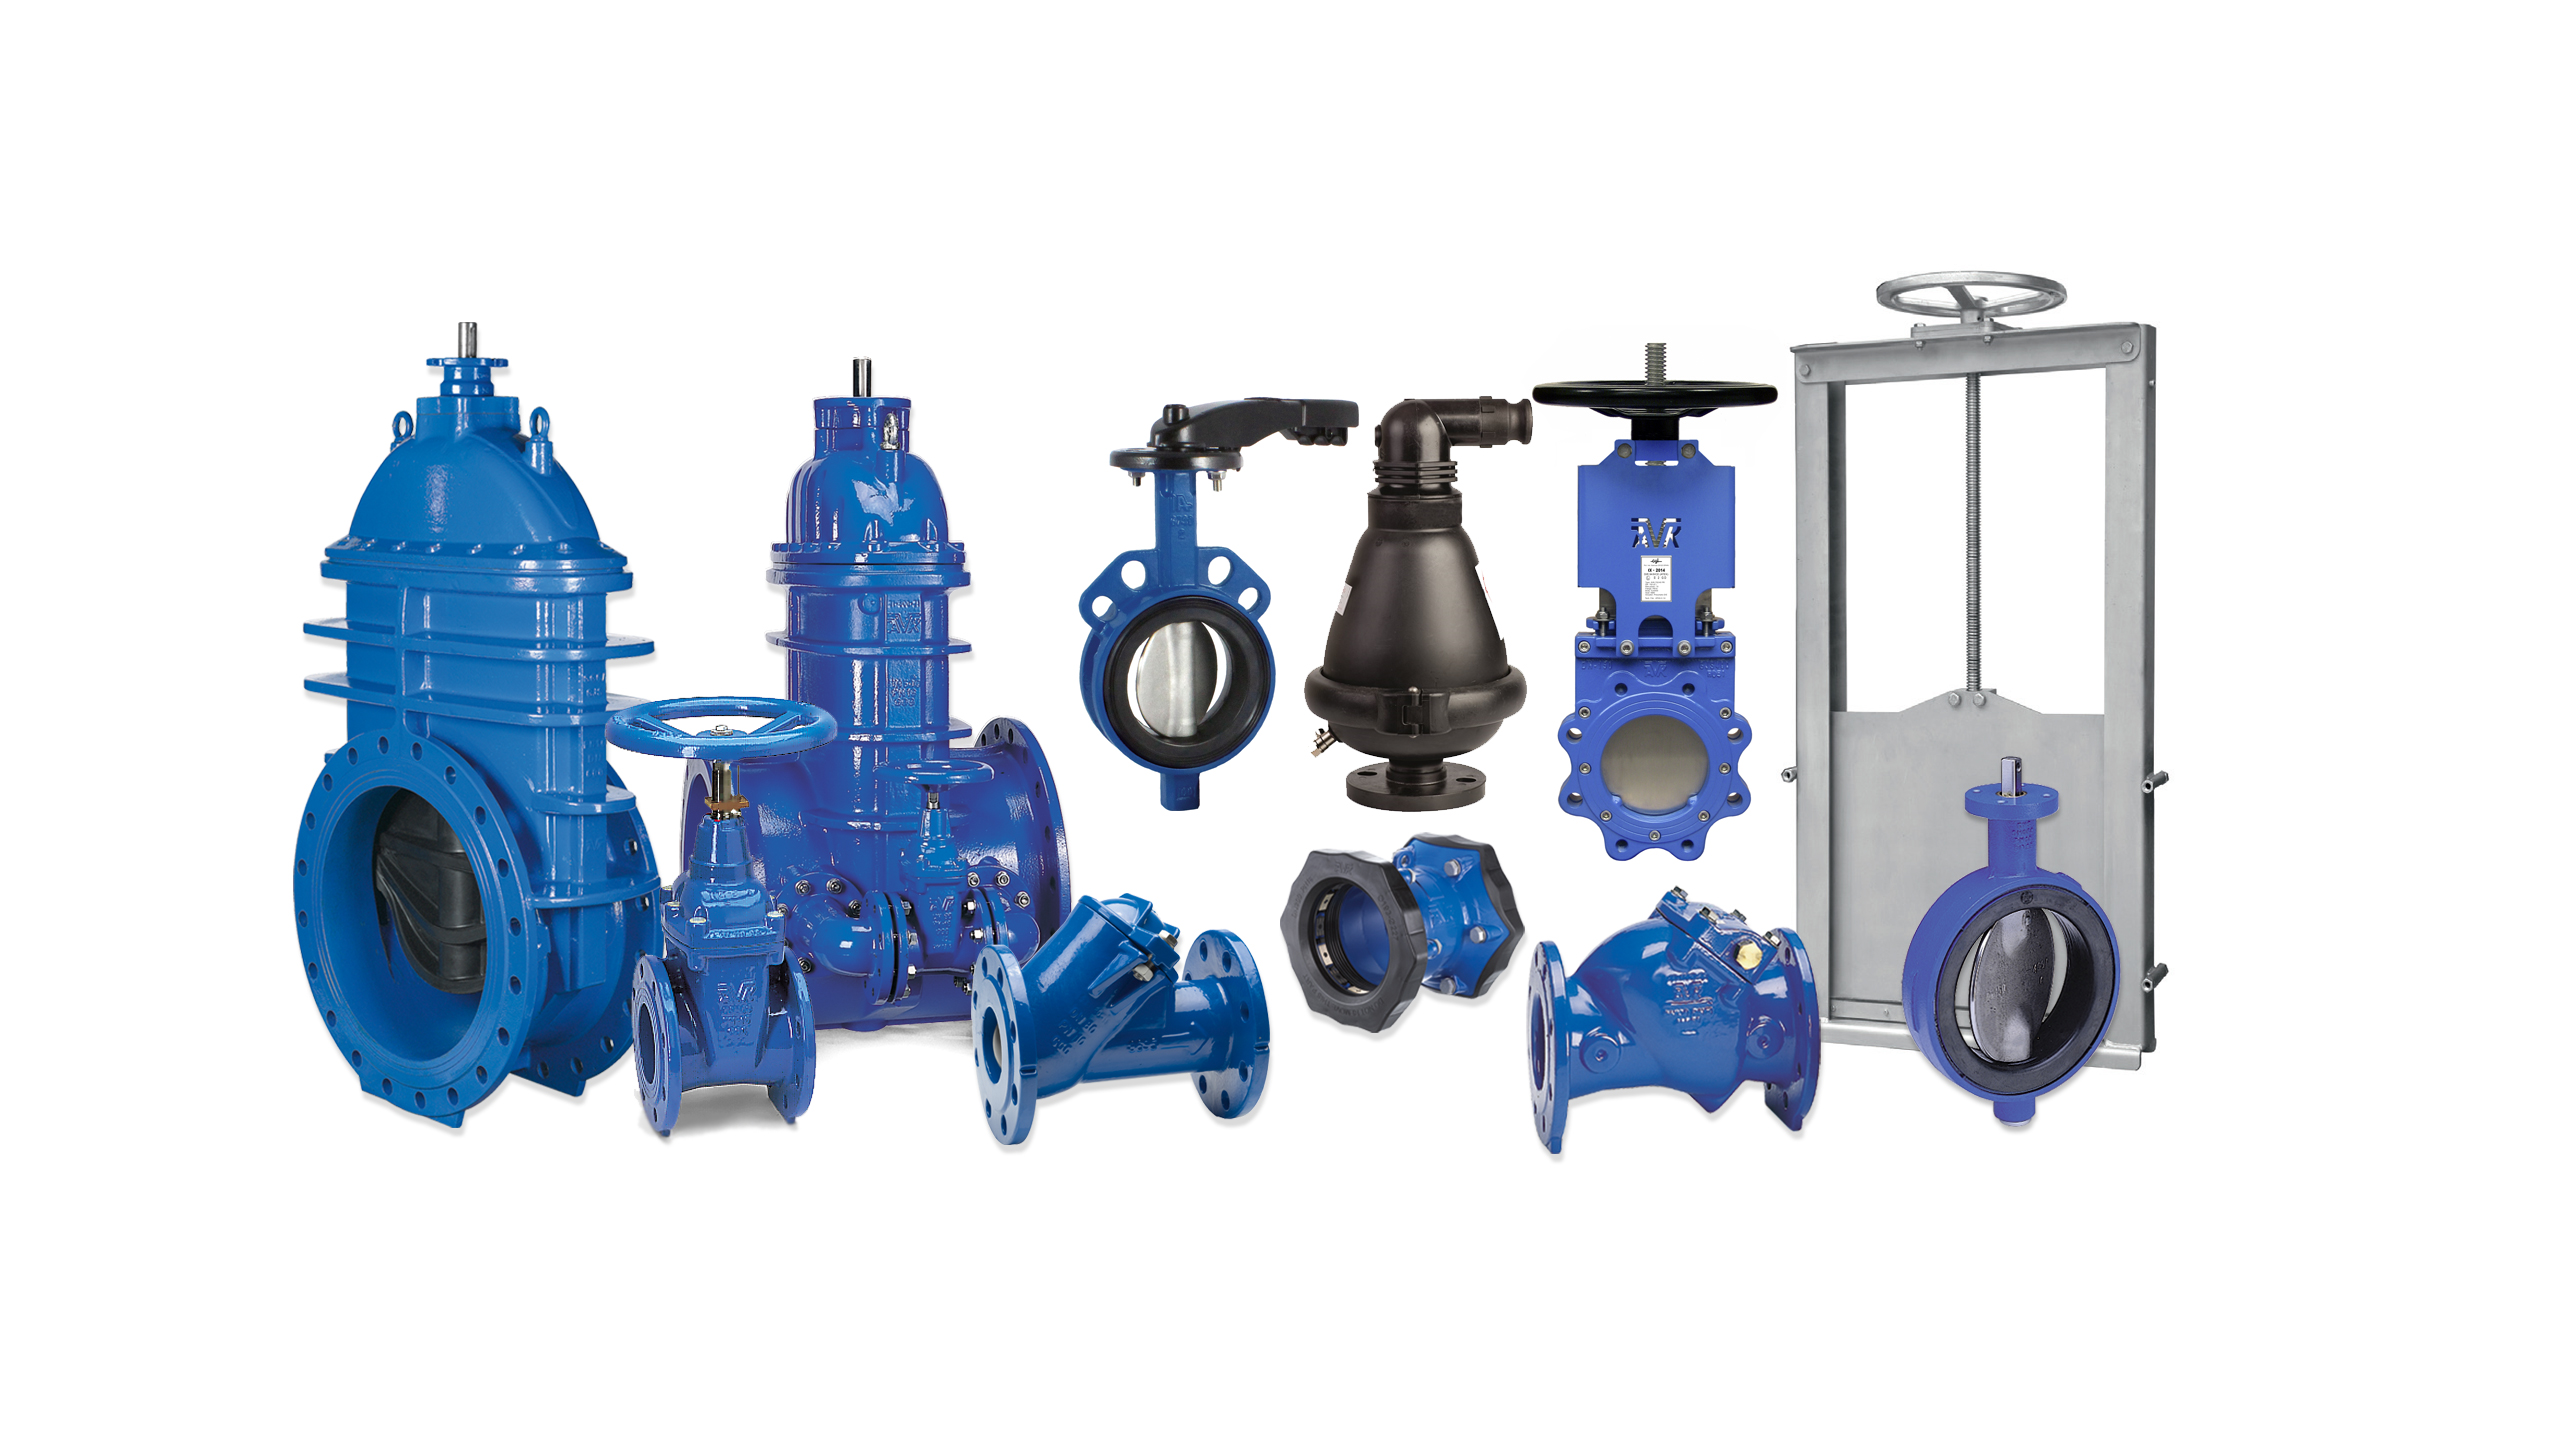 Waste Water, Hight Quality, AVK, Valves, Solutions, QUALITY, SUSTAINABILITY, Environment, Corporate social responsibility, reuse, DIN, BS, AWWA, AS, JIS,  gate valves, accessories, knife gate valves, ball and swing check valves, butterfly valves, air valves, penstocks